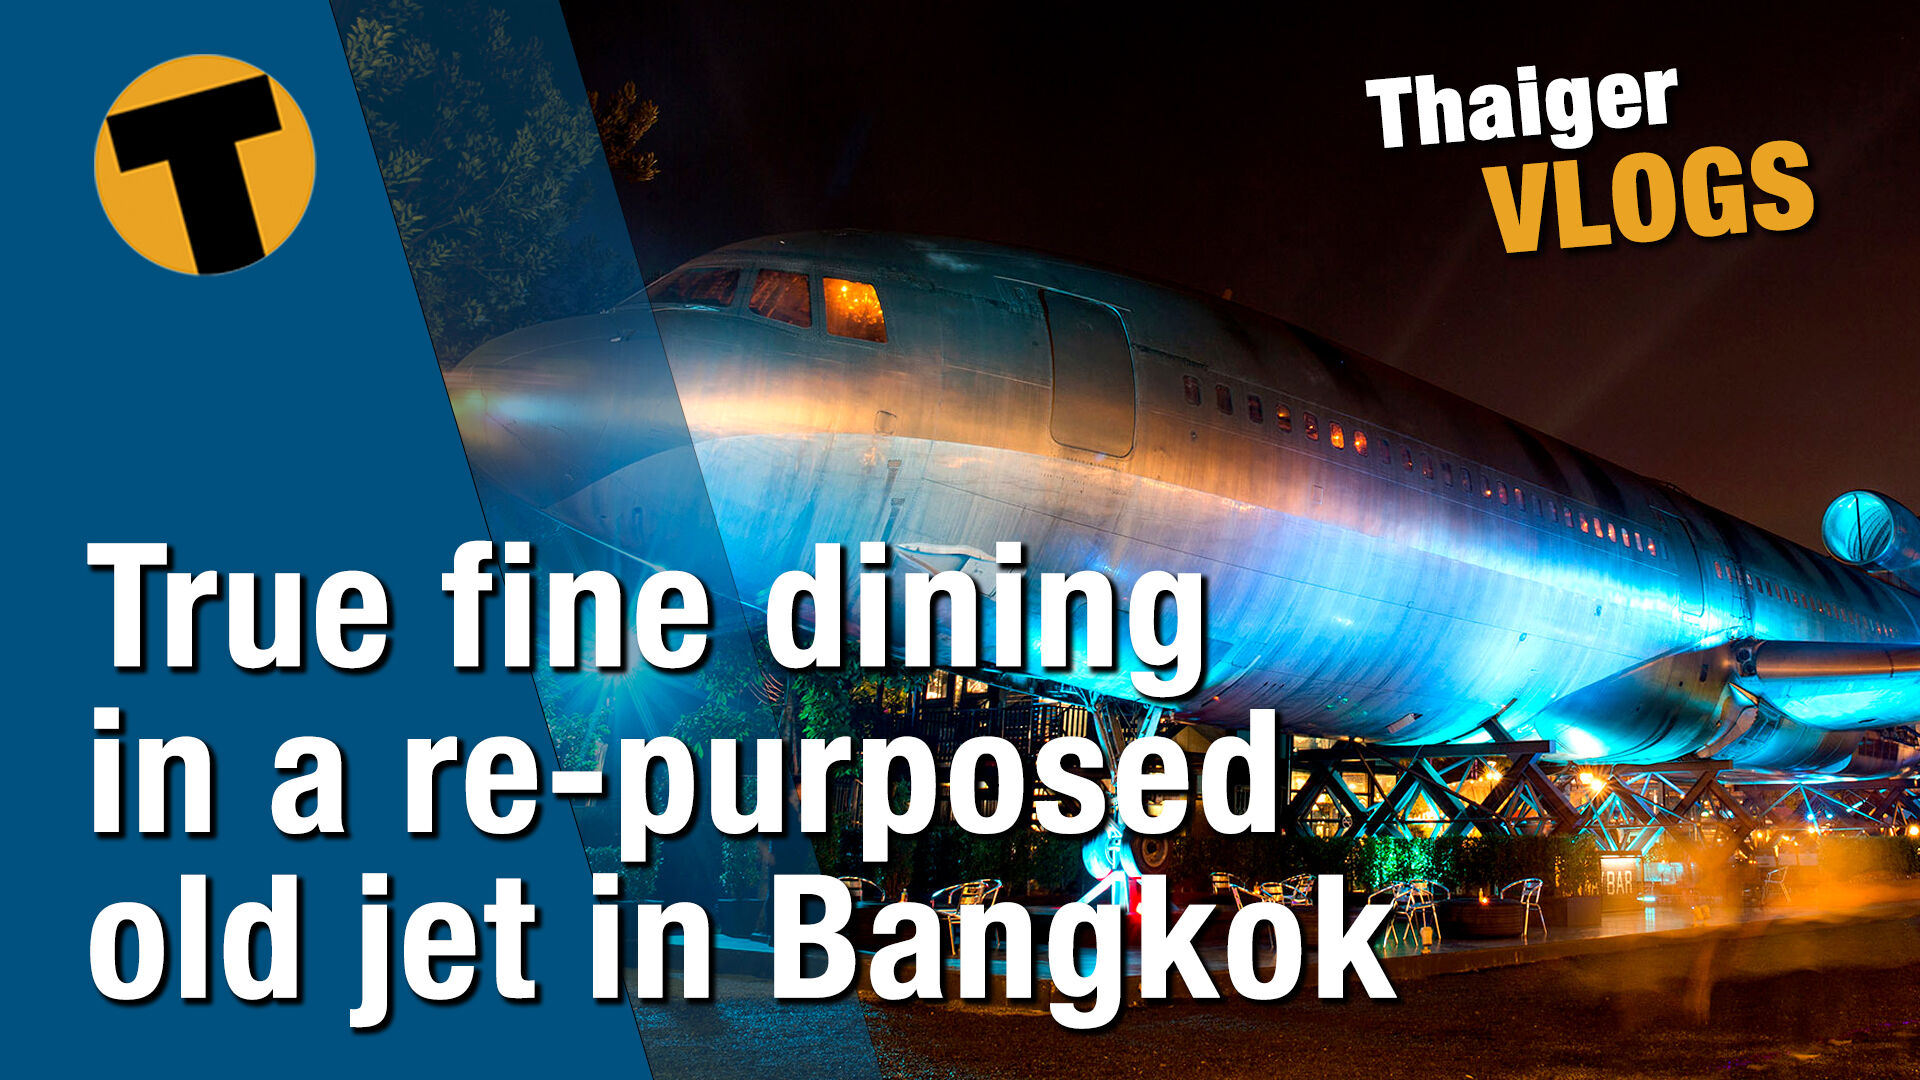 Flying high and fine dining in a re-purposed old jet in Bangkok | VIDEO | The Thaiger